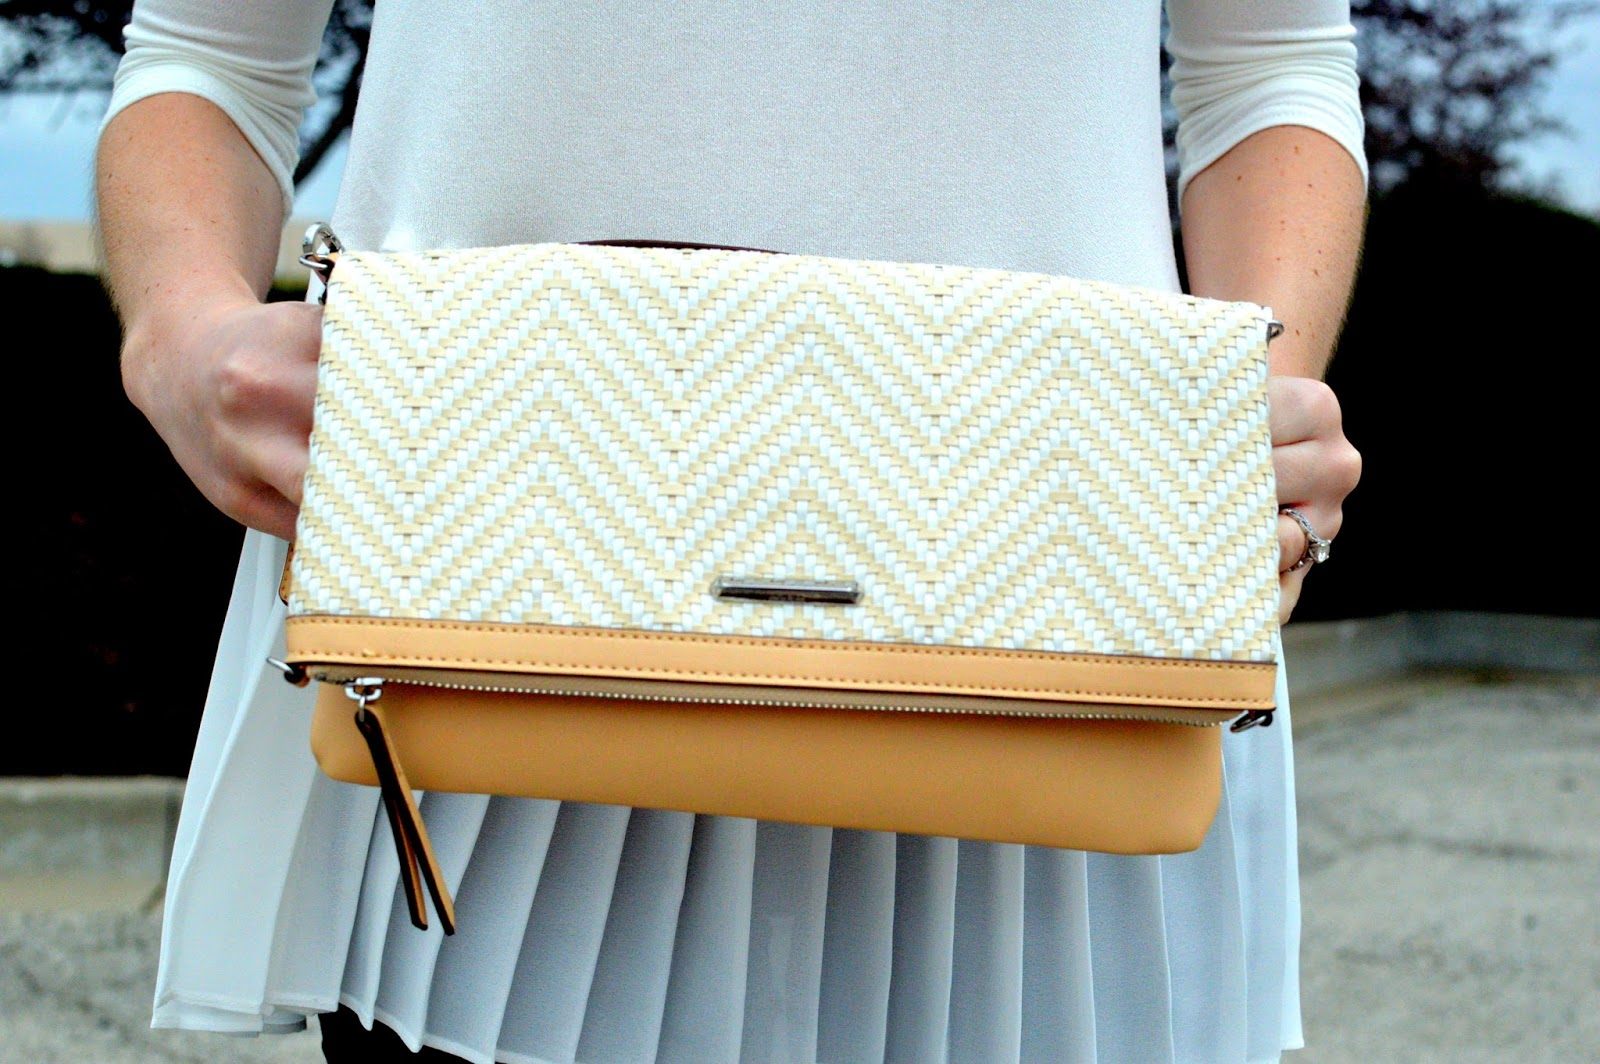 stella and dot woven clutch review and giveaway